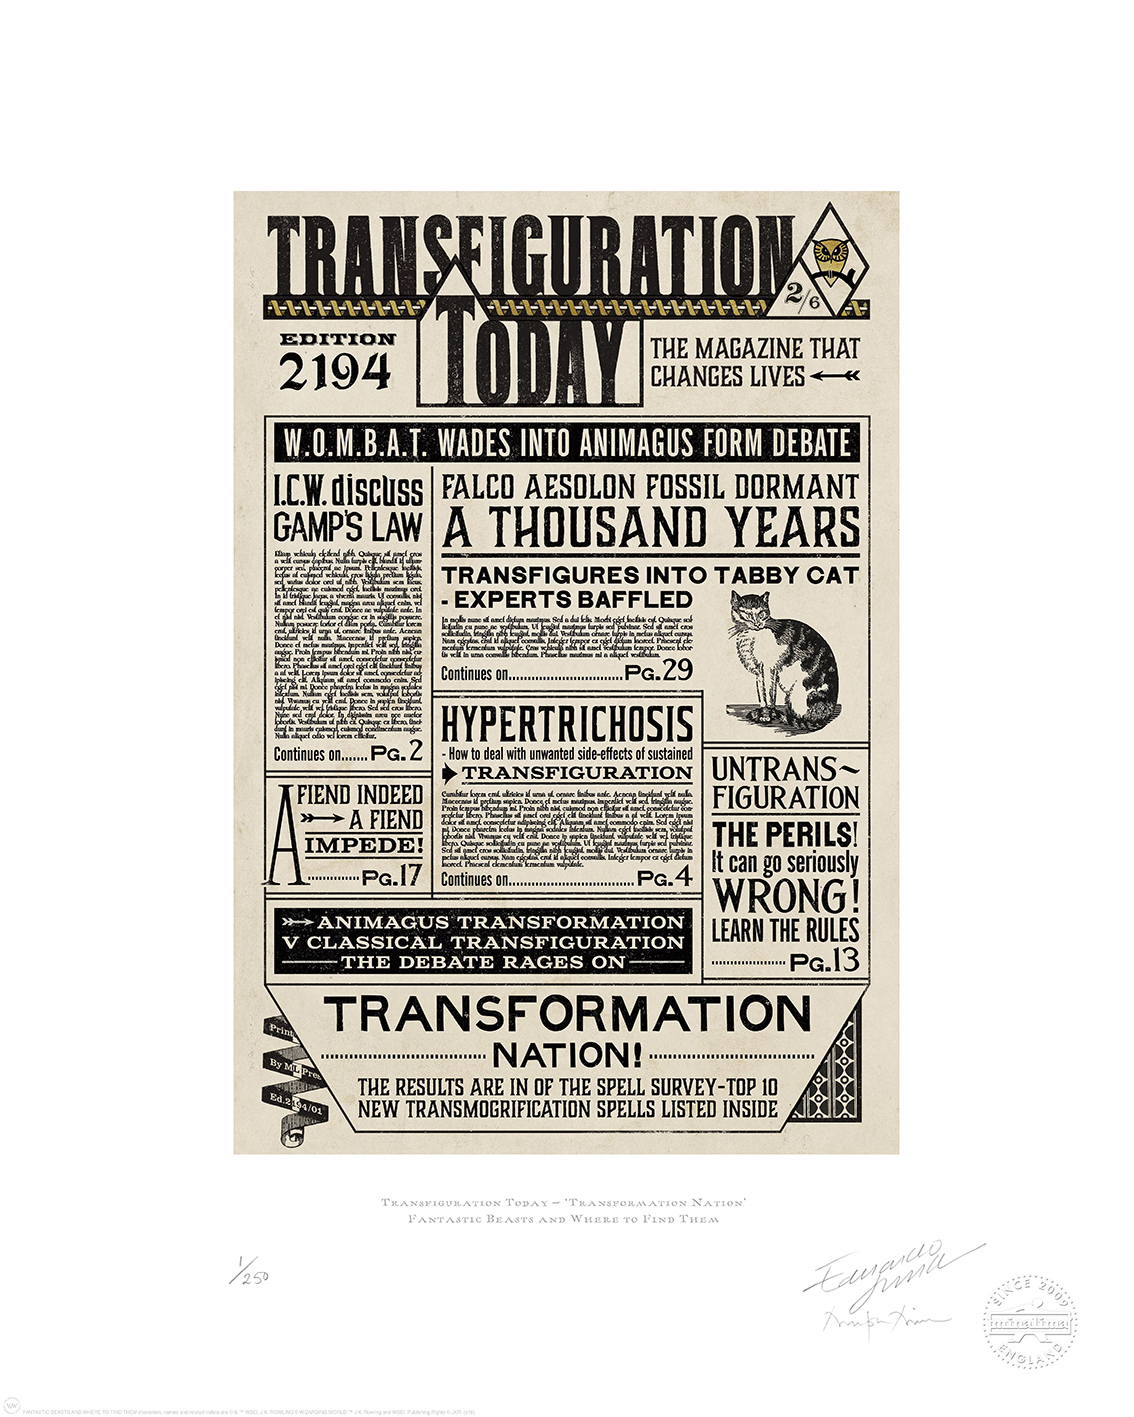 transfiguration_today_minalima_2.jpg